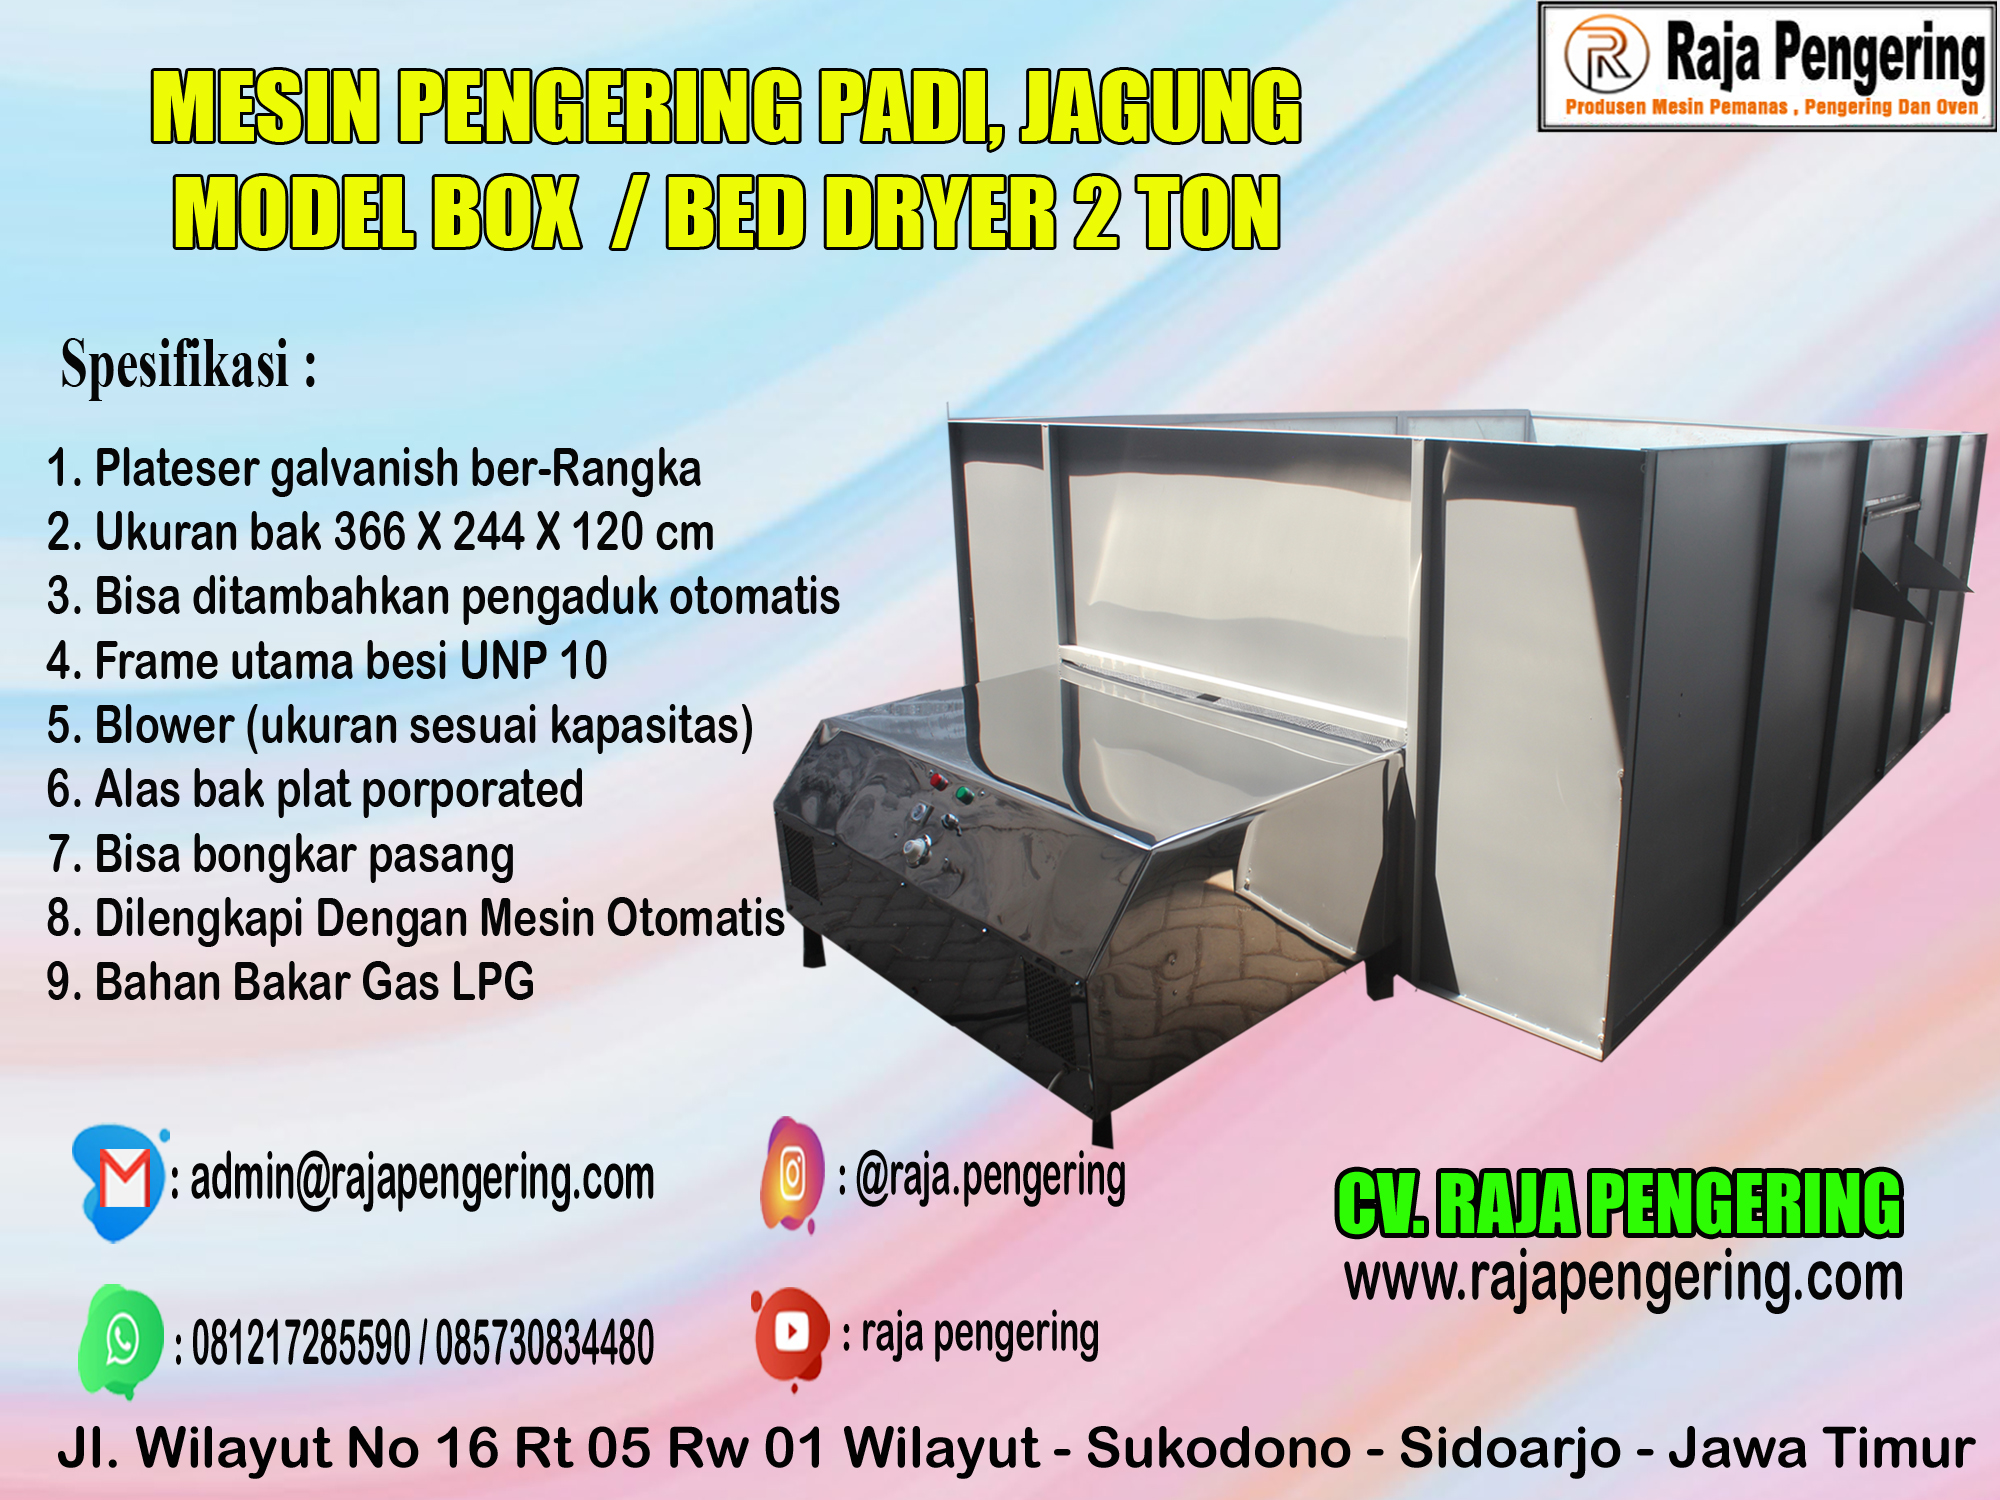 mesin bed dryer, mesin box dryer, mesin pengering padi